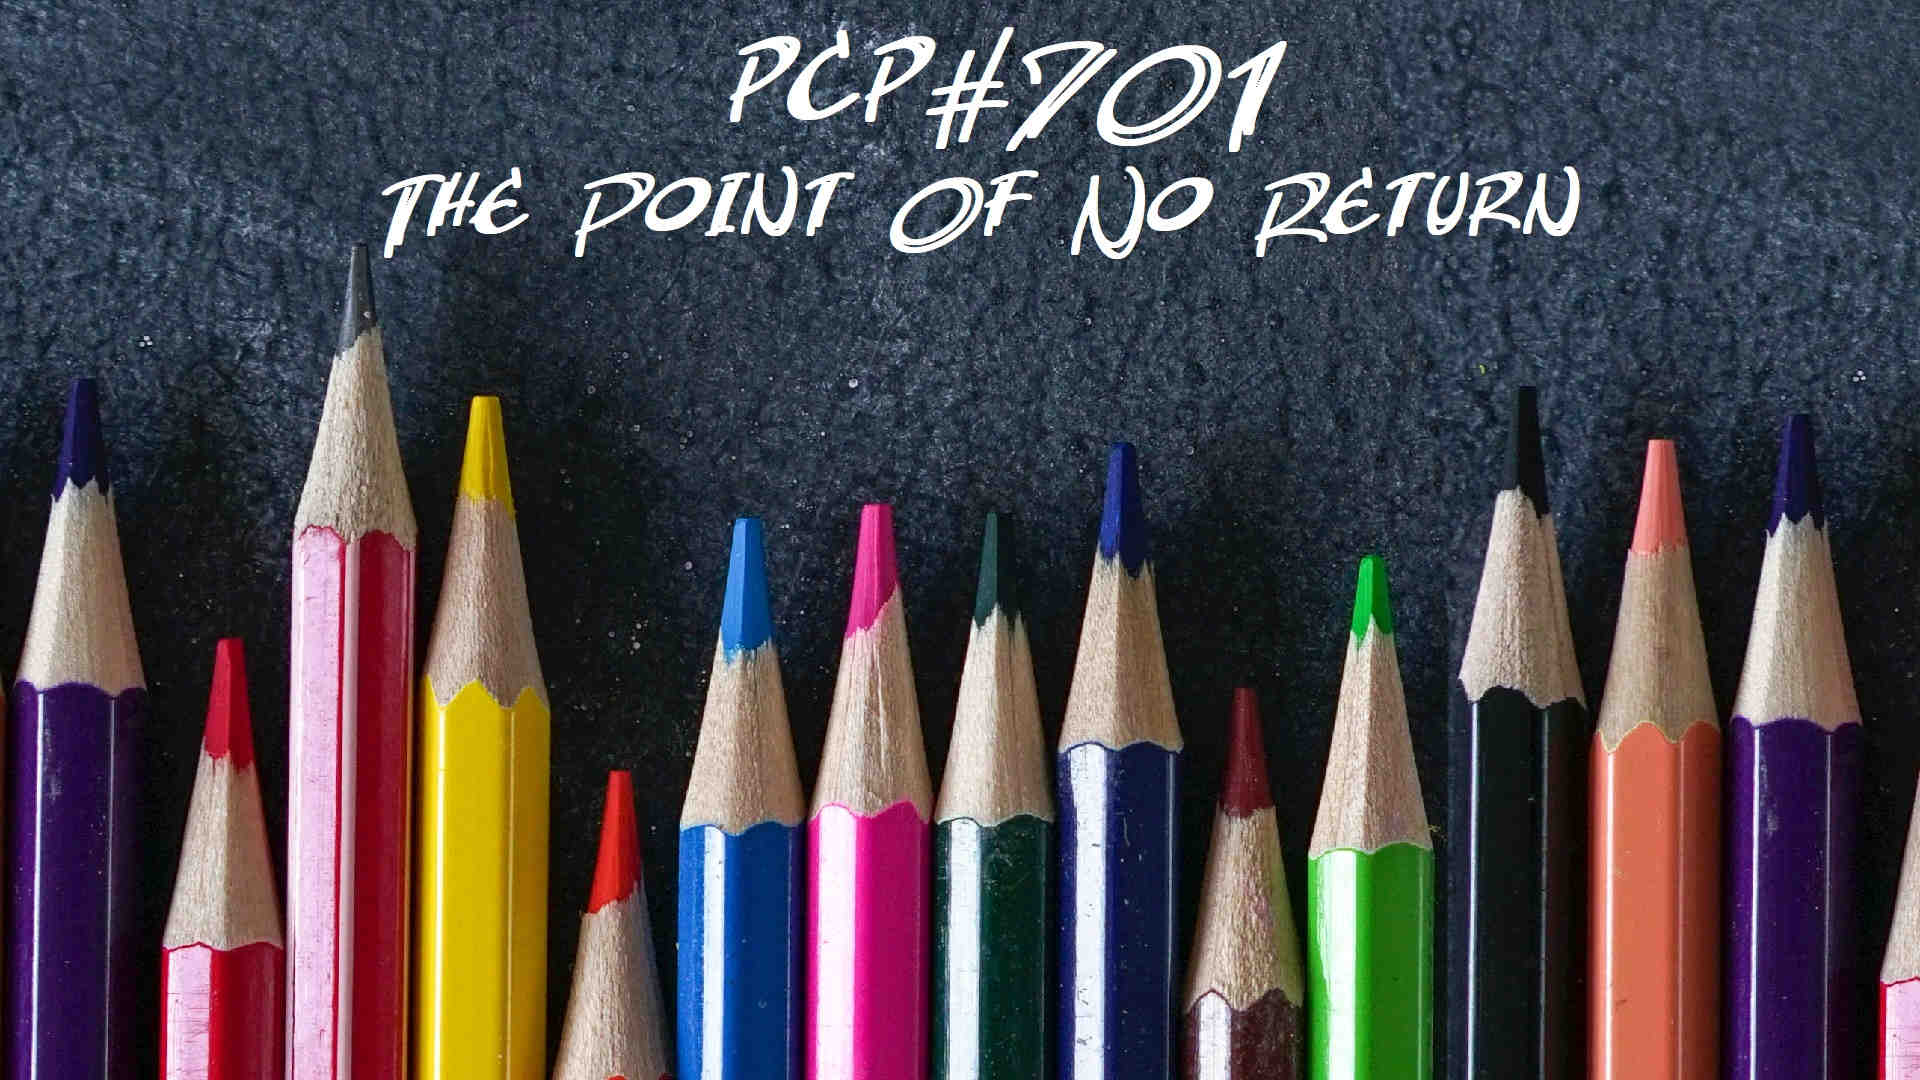 PCP#701... The Point Of No Return.....